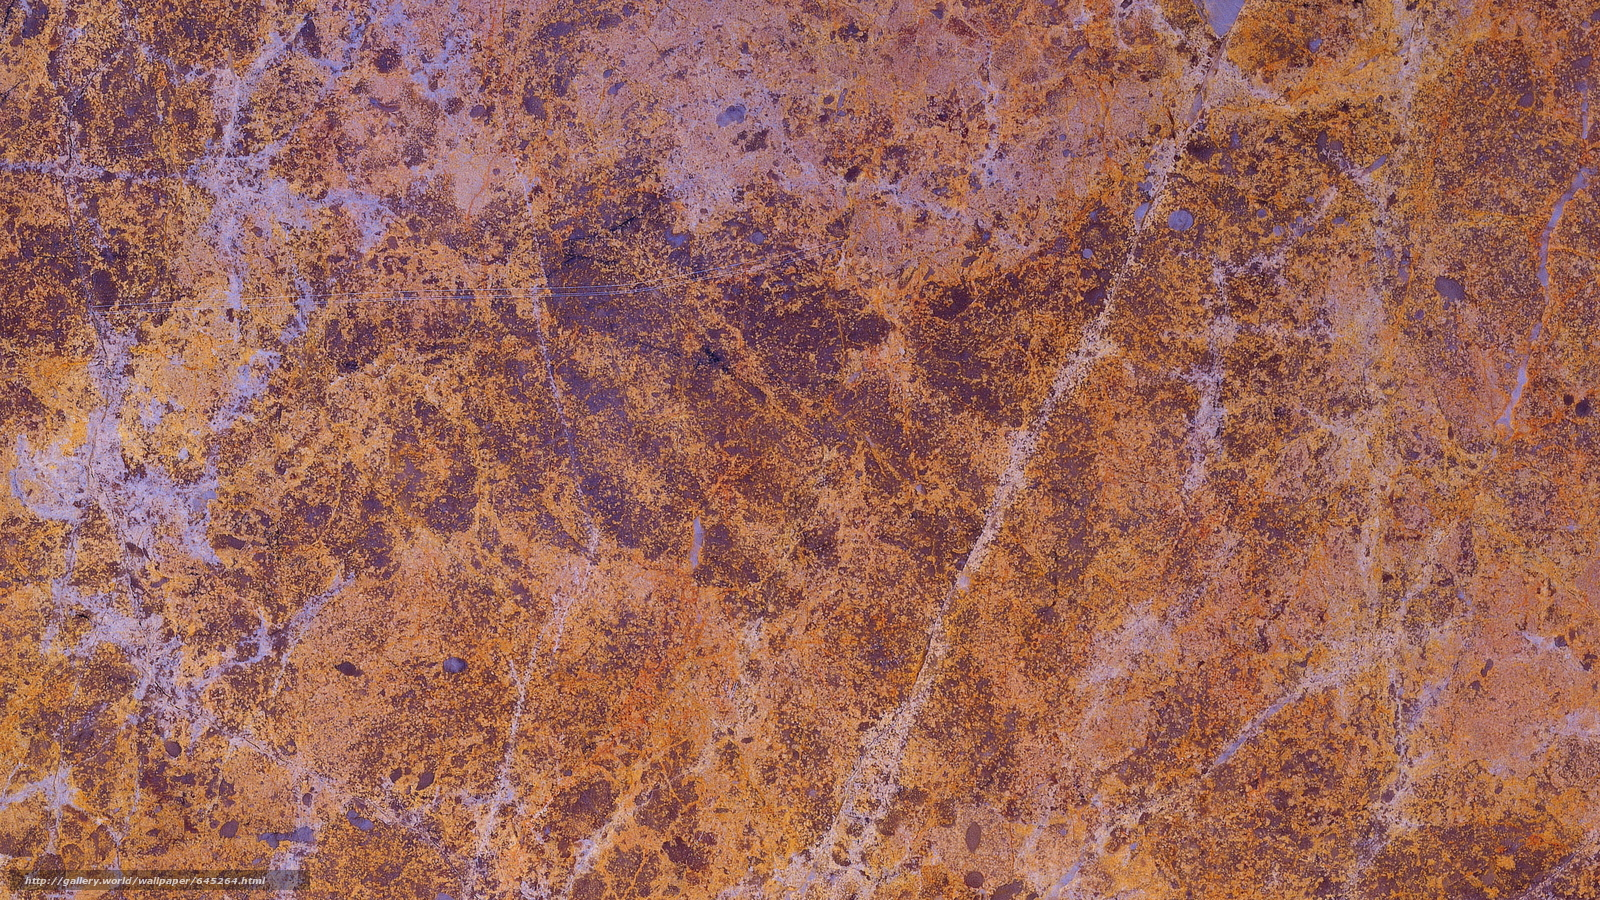 Download wallpaper TEXTURE,  Texture,  stone,  texture stone free desktop wallpaper in the resolution 2880x1620 — picture №645264